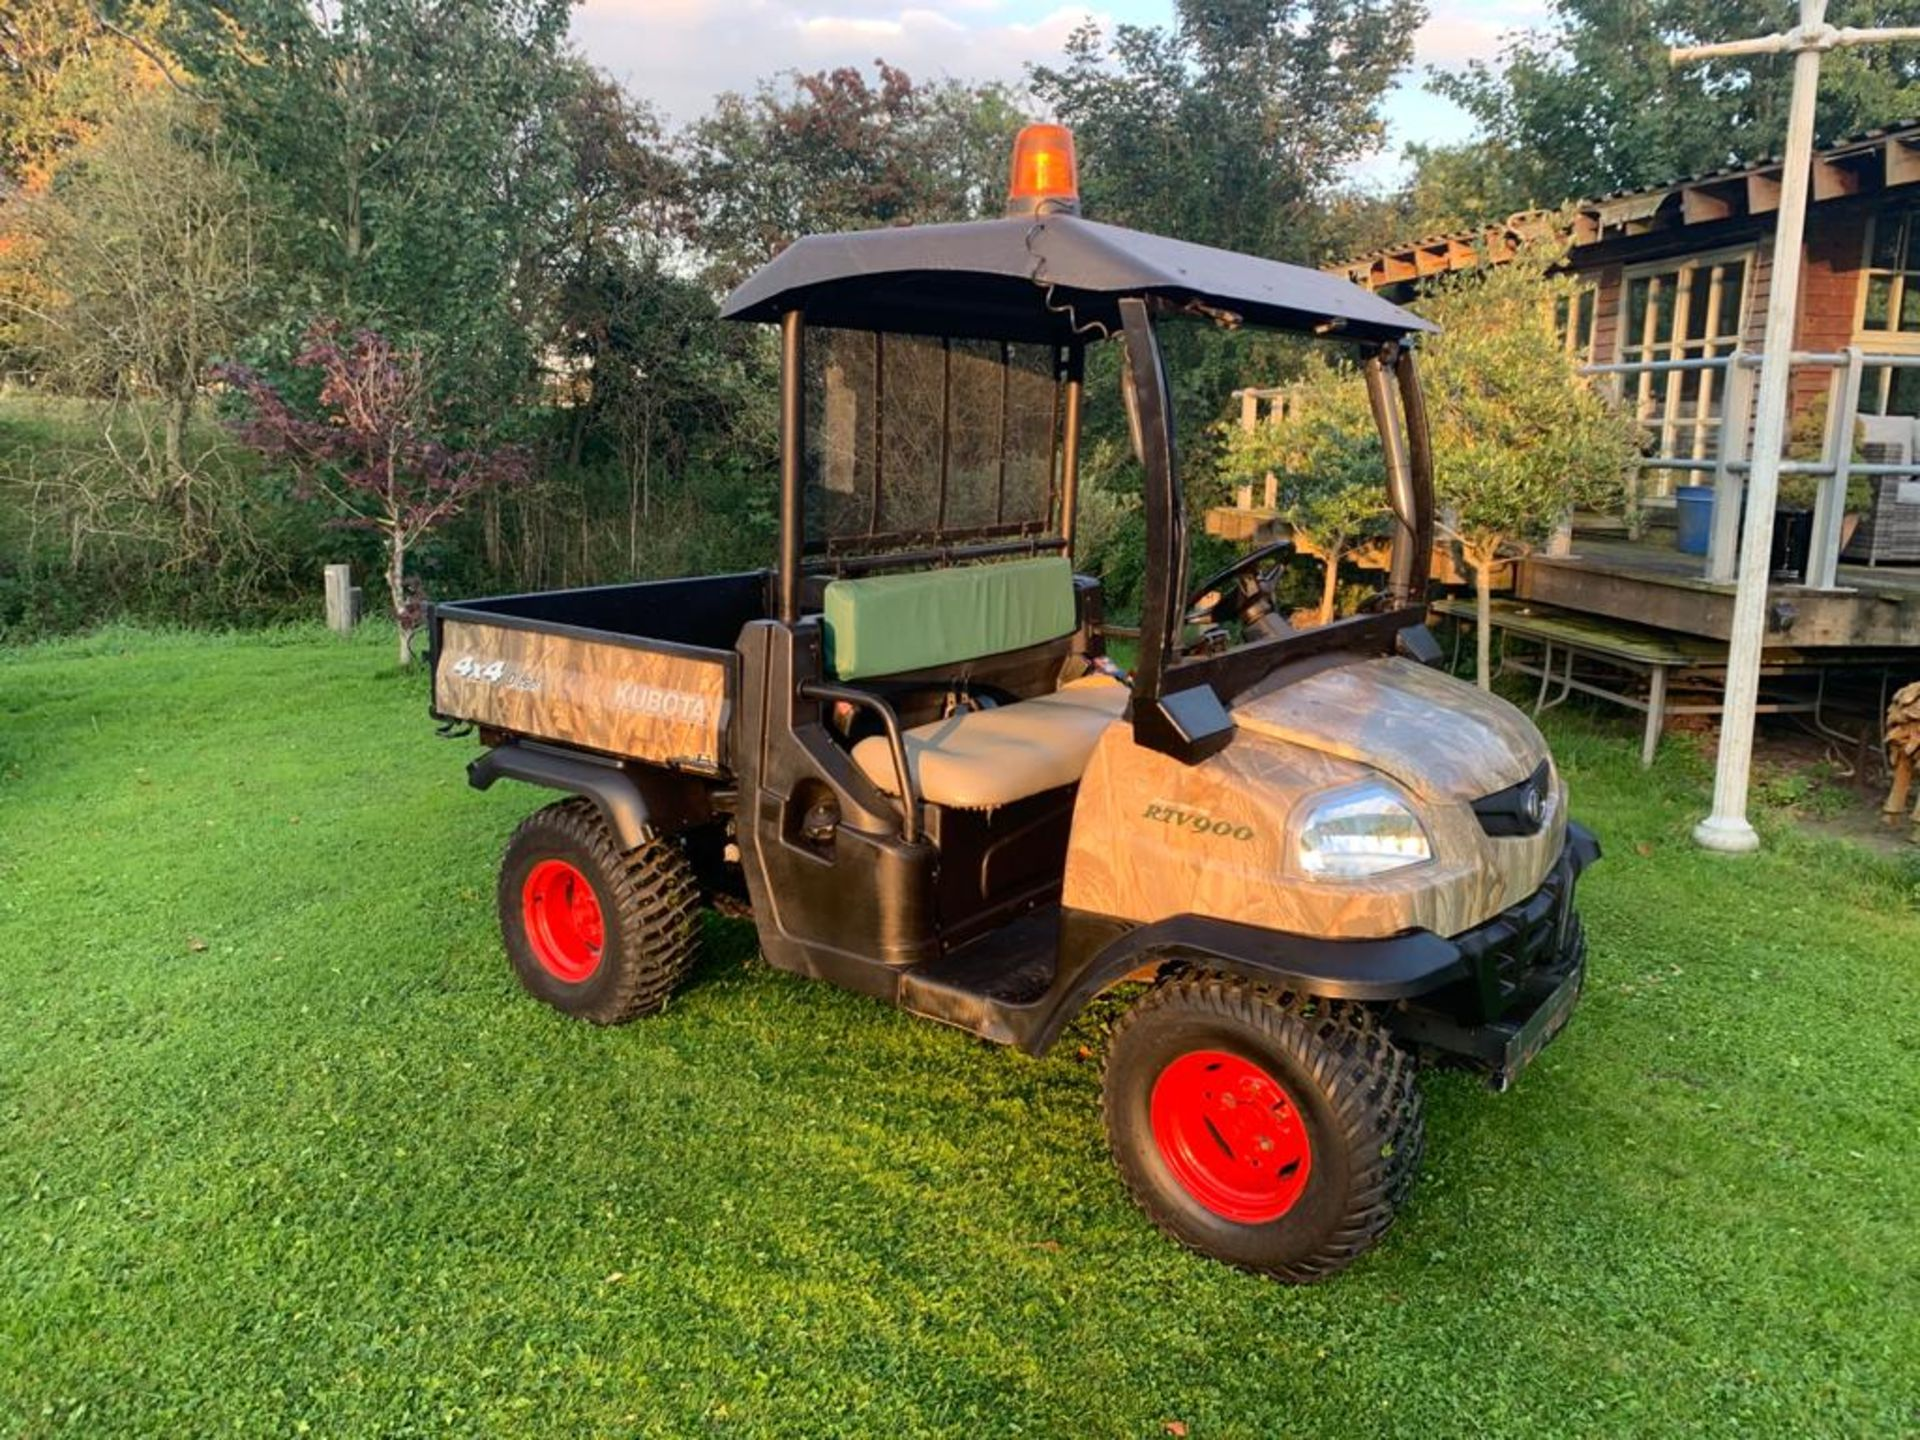 KUBOTA 4X4 DIESEL HYDRAULIC TIPPER BUGGY, RUNS, WORKS AND TIPS *PLUS VAT* - Image 2 of 22